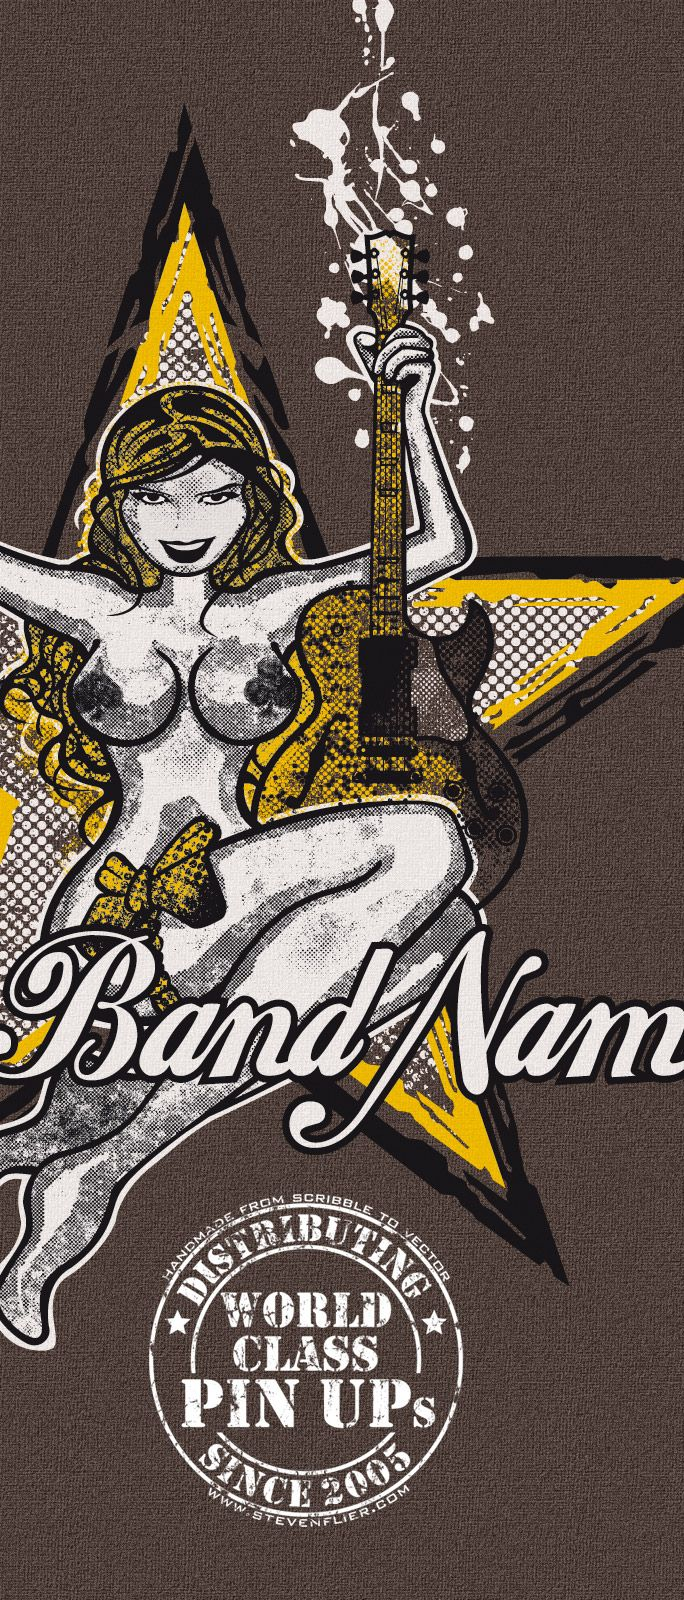 Band PinUp & Logo - Interested? Gimme a call.